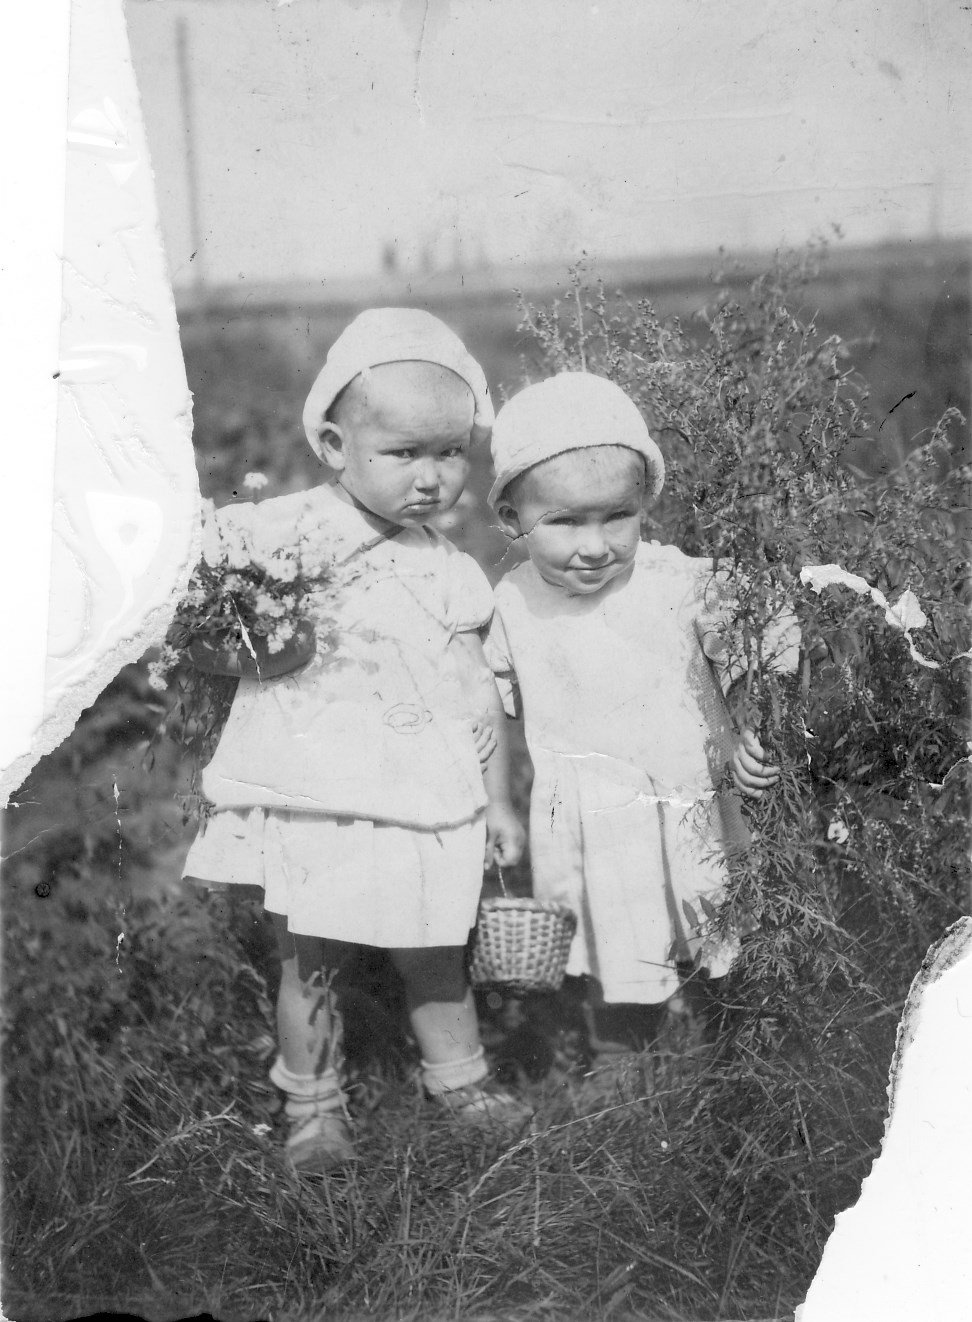 In 1946 in Chelabinsk on a small path babushka Lidia and her friend Raisa who is now living in Novosibirsk